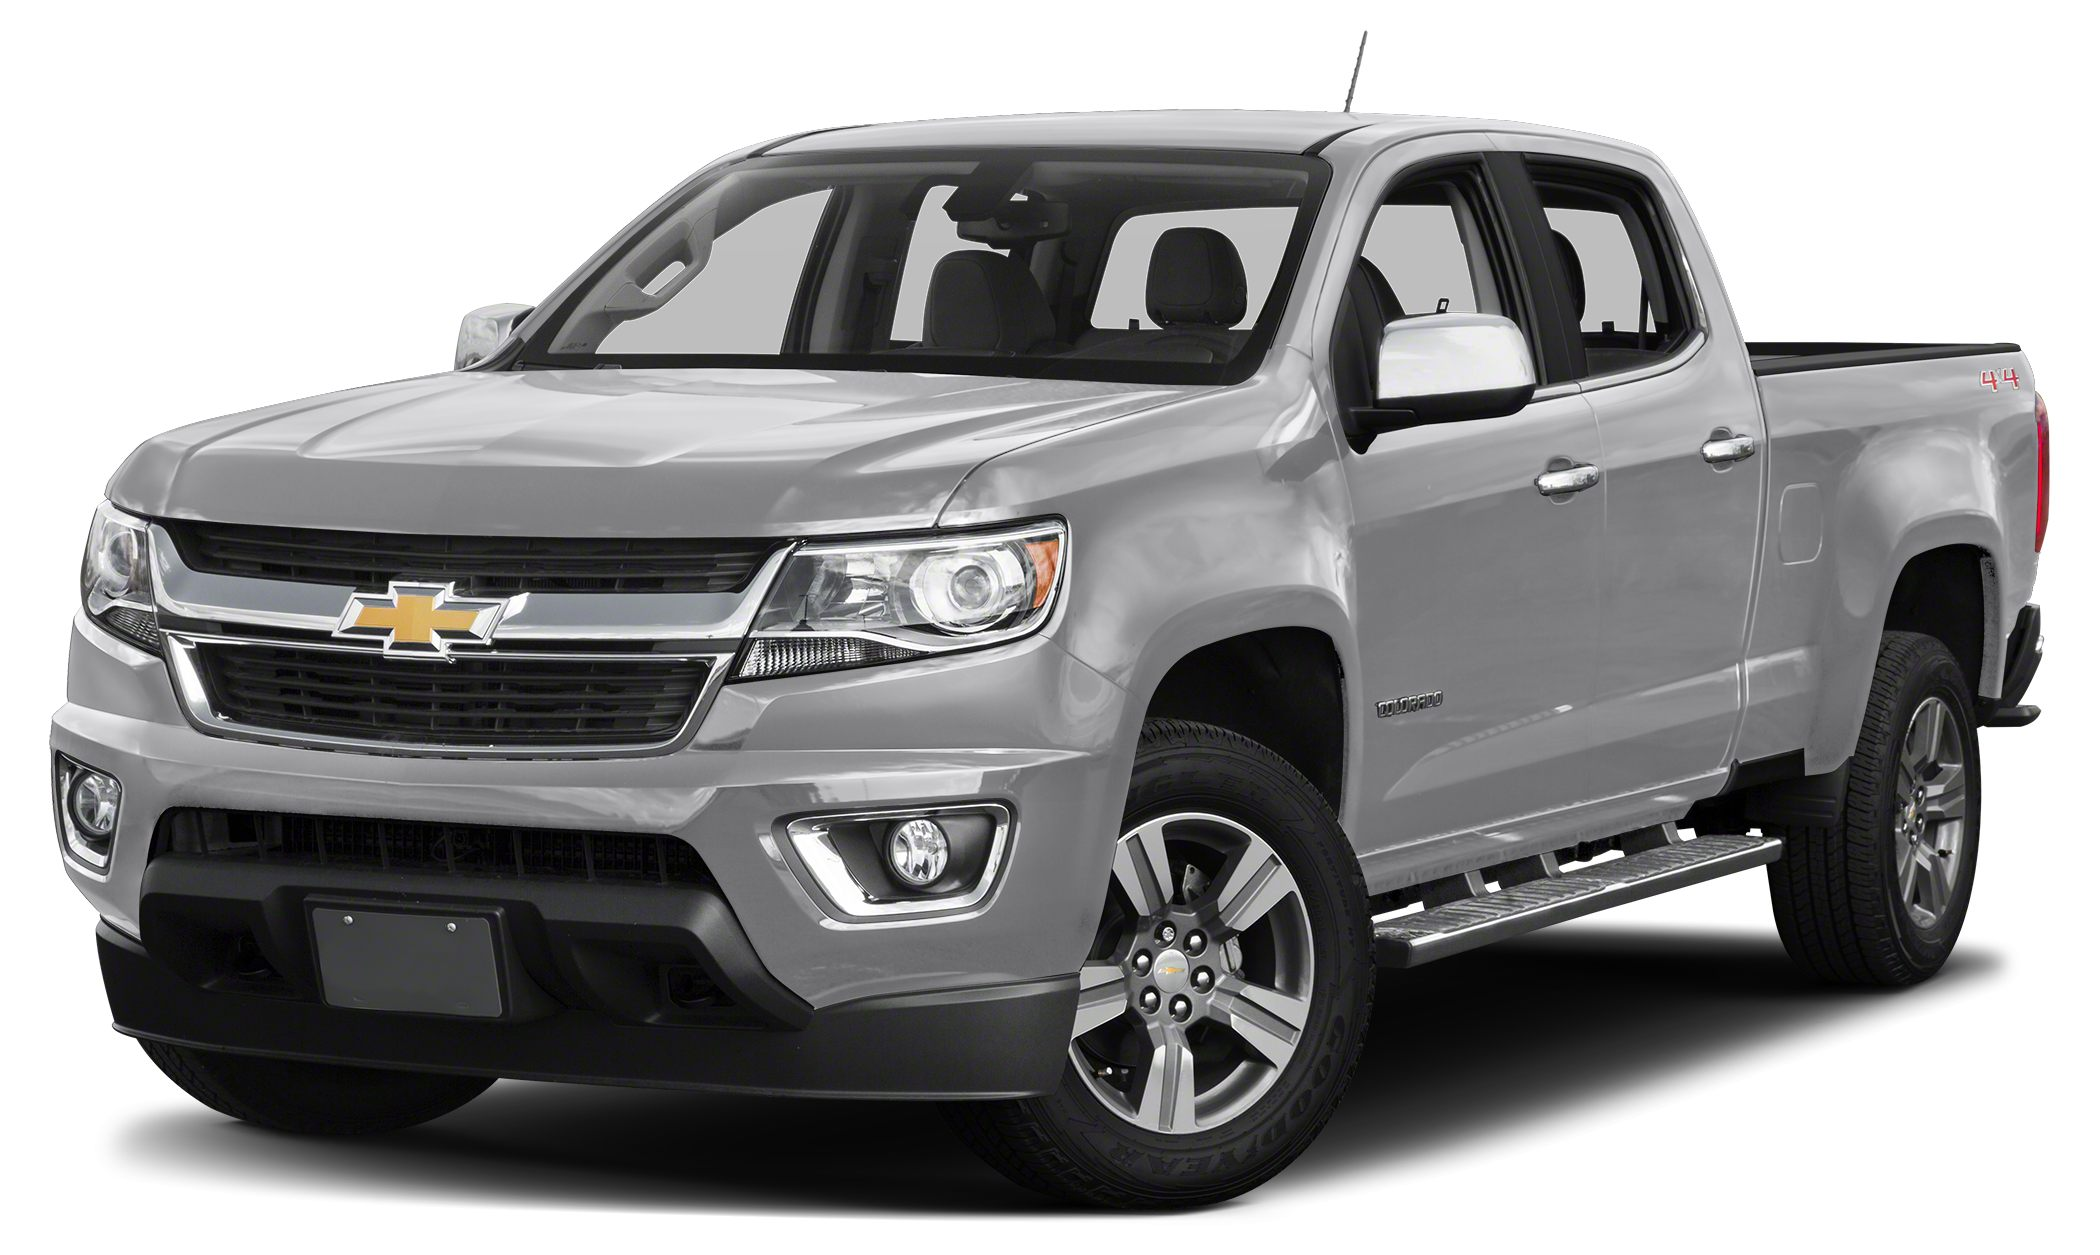 2015 Chevrolet Colorado Z71 Miles 14Color Summit White Stock 000C5495 VIN 1GCGSCE31F1264814